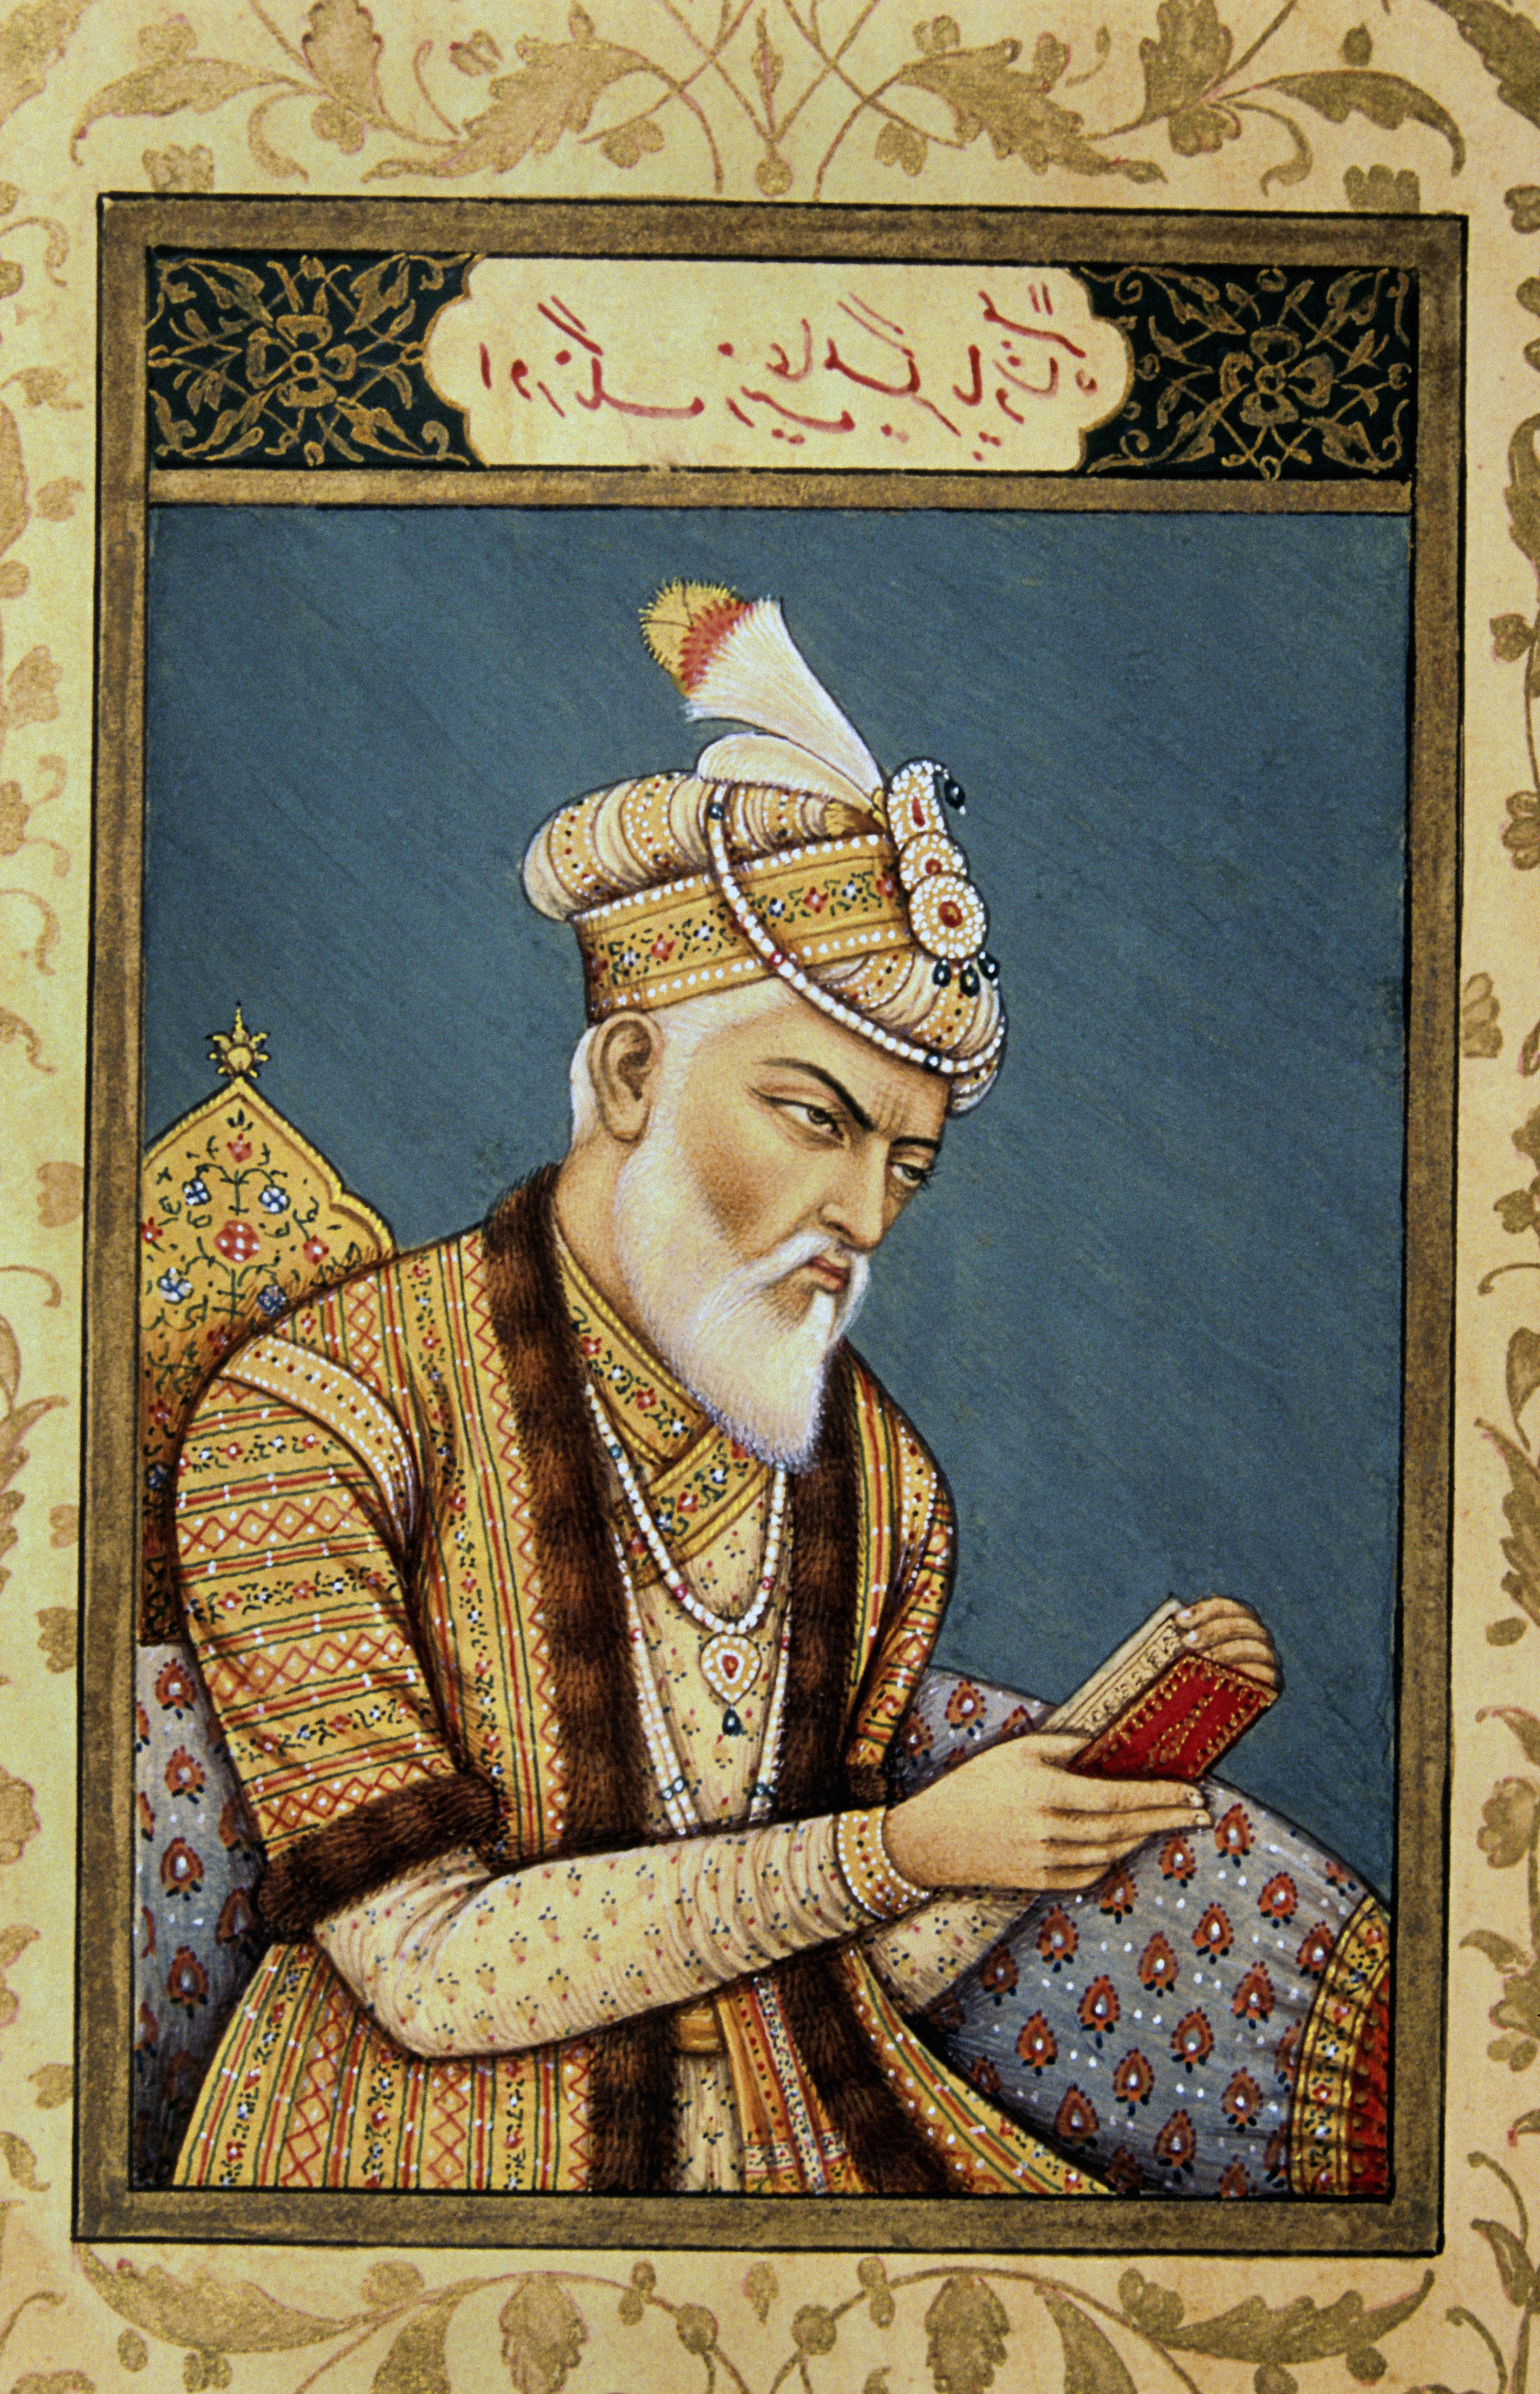 a short story on the last few days of emperor shah jahan Aurangzeb, son of shah jahan and was considered as the last great mughal emperor  more akbar birbal stories here  other interesting short stories.